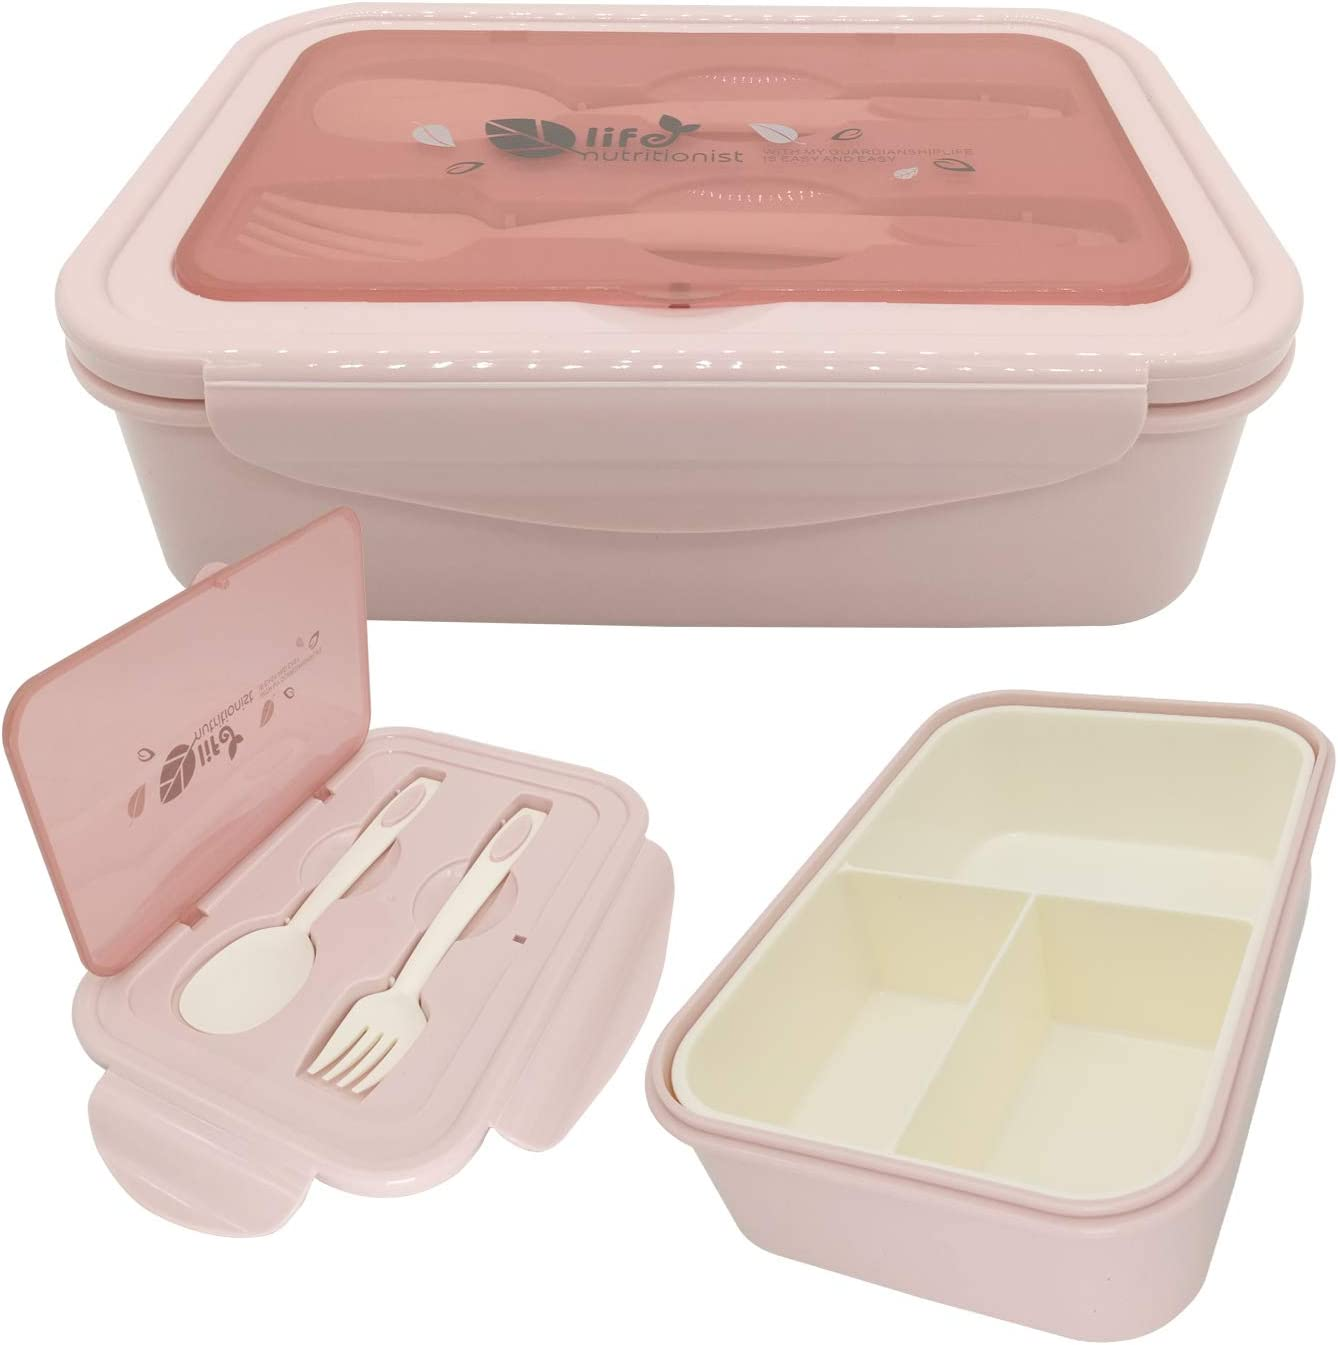 Bento Box, Lunch Box for Kids Adults, 3 Compartment Bento Lunch container, Food Storage Container Boxes, BPA Free On-the-Go Meal Prep Containers, Microwave/Dishwasher/Freezer Safe (Shallow Pink)